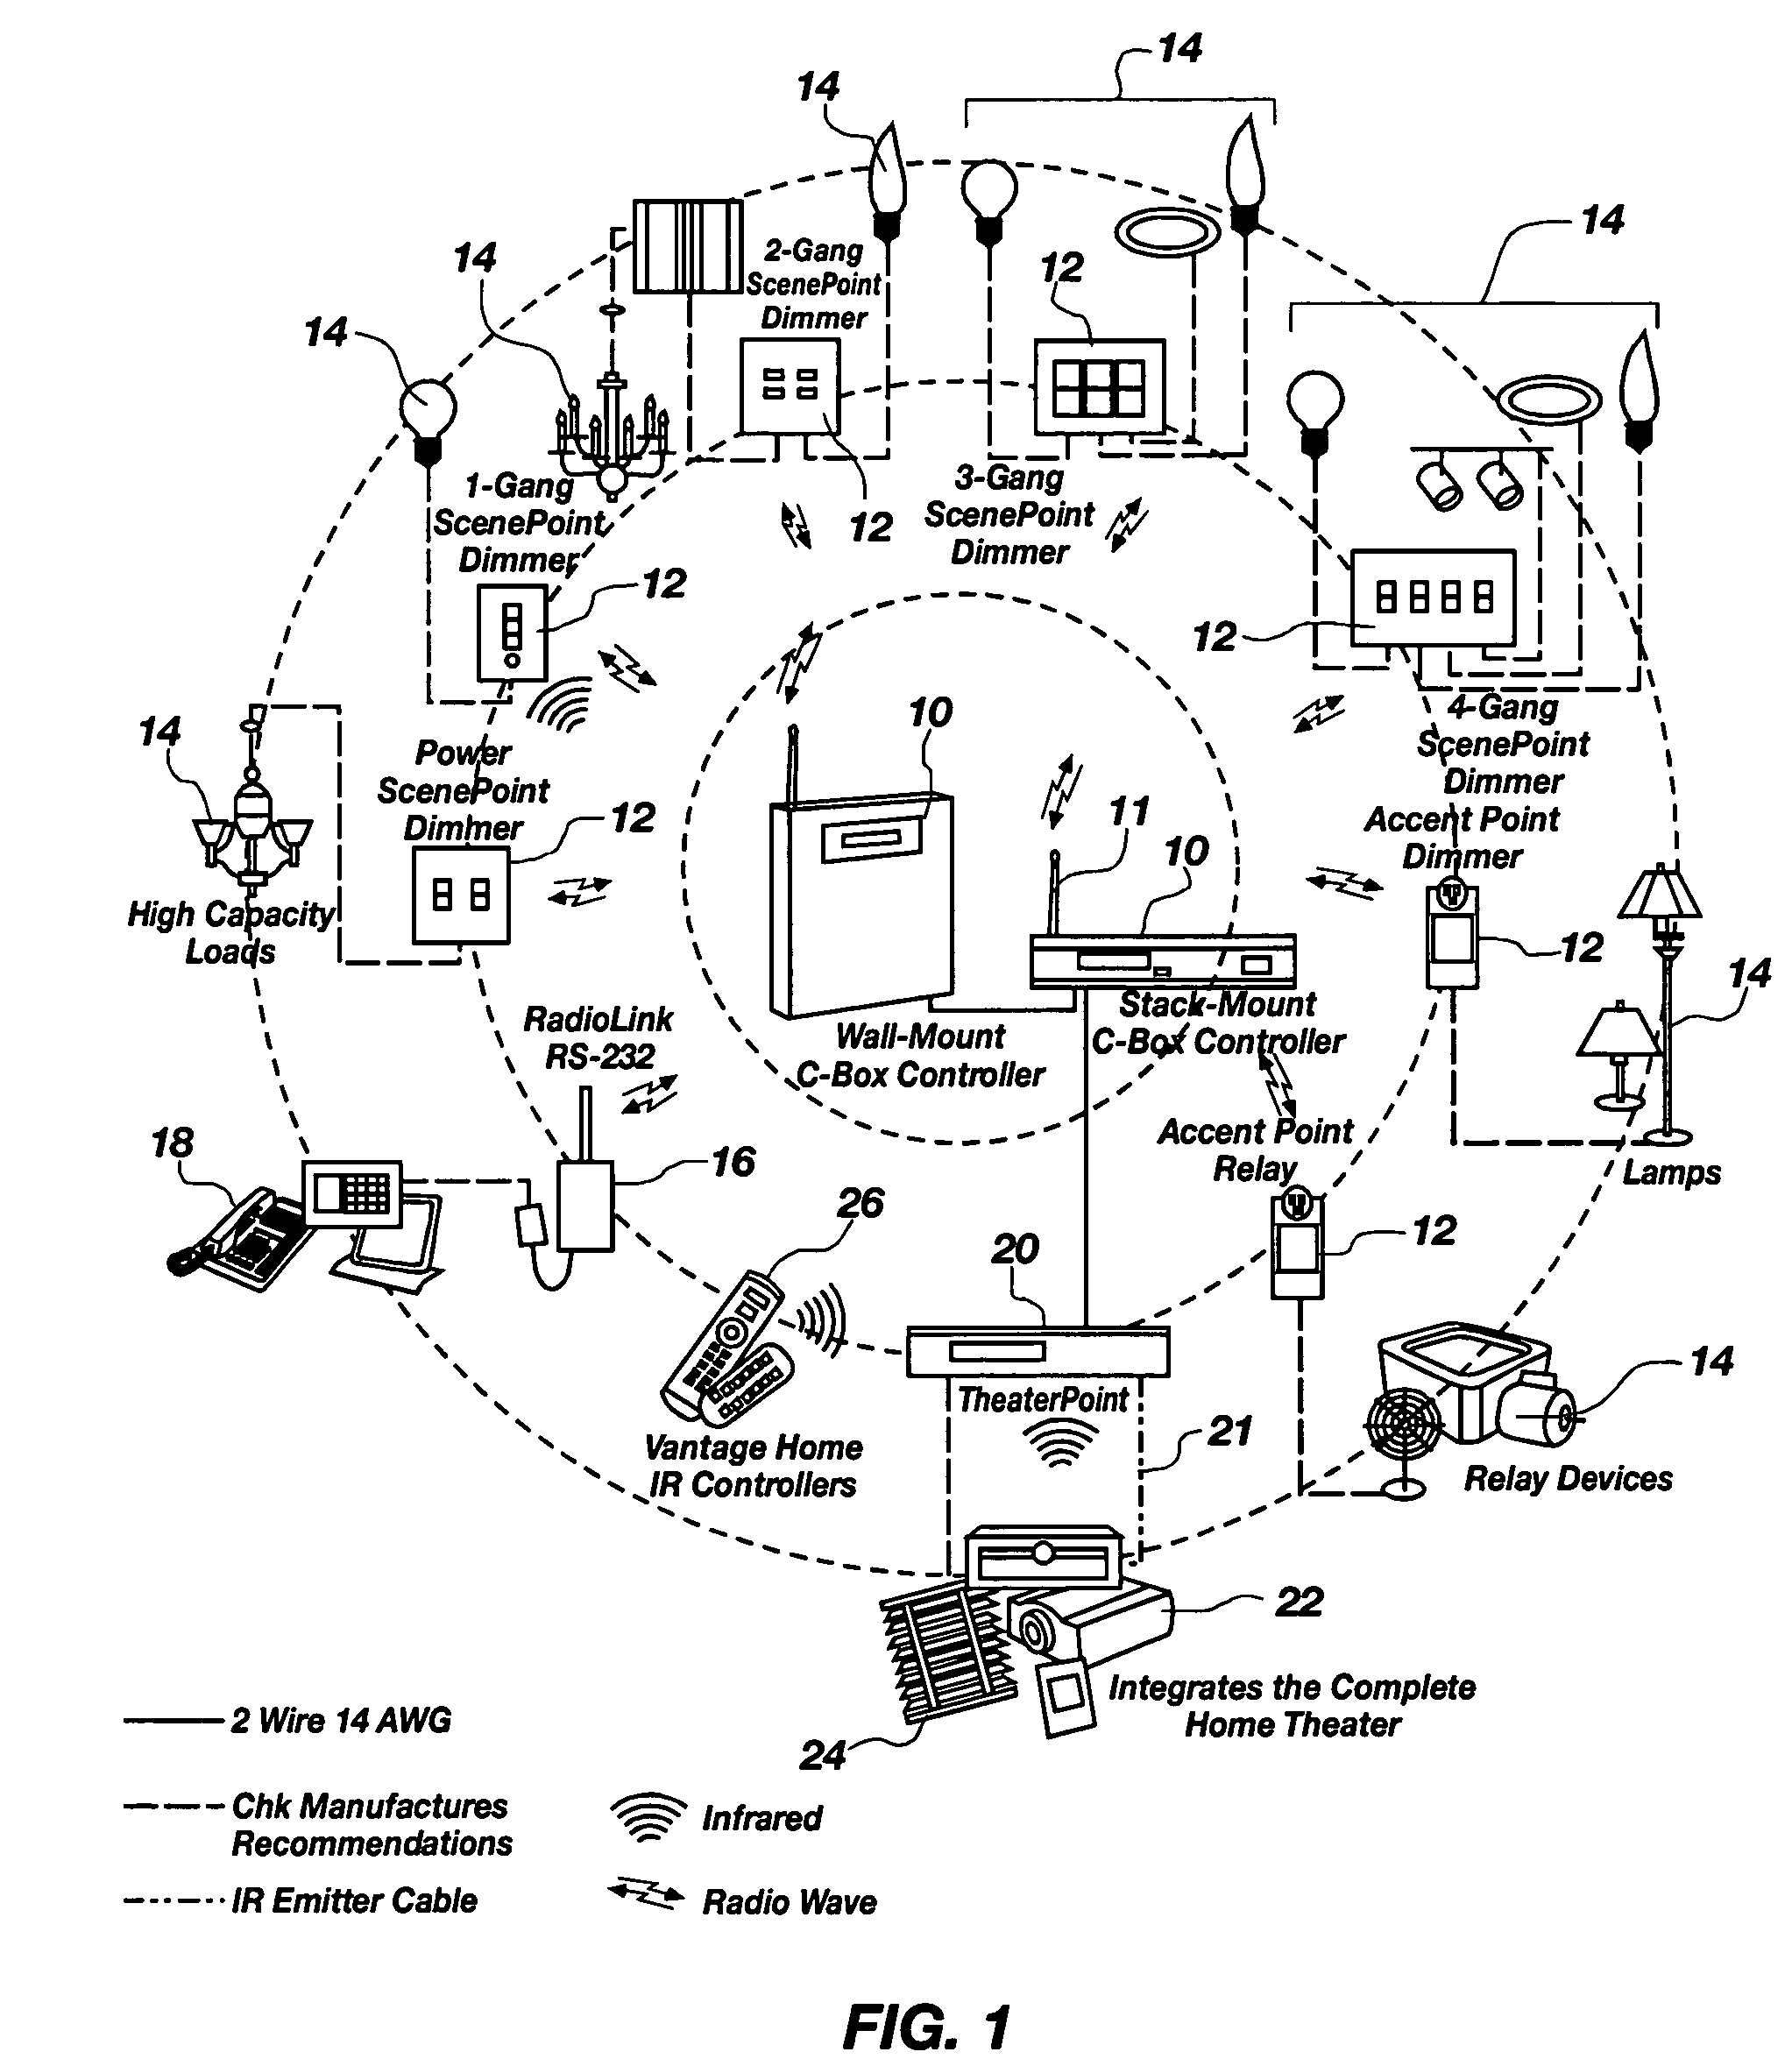 patent us7755506 - automation and theater control system